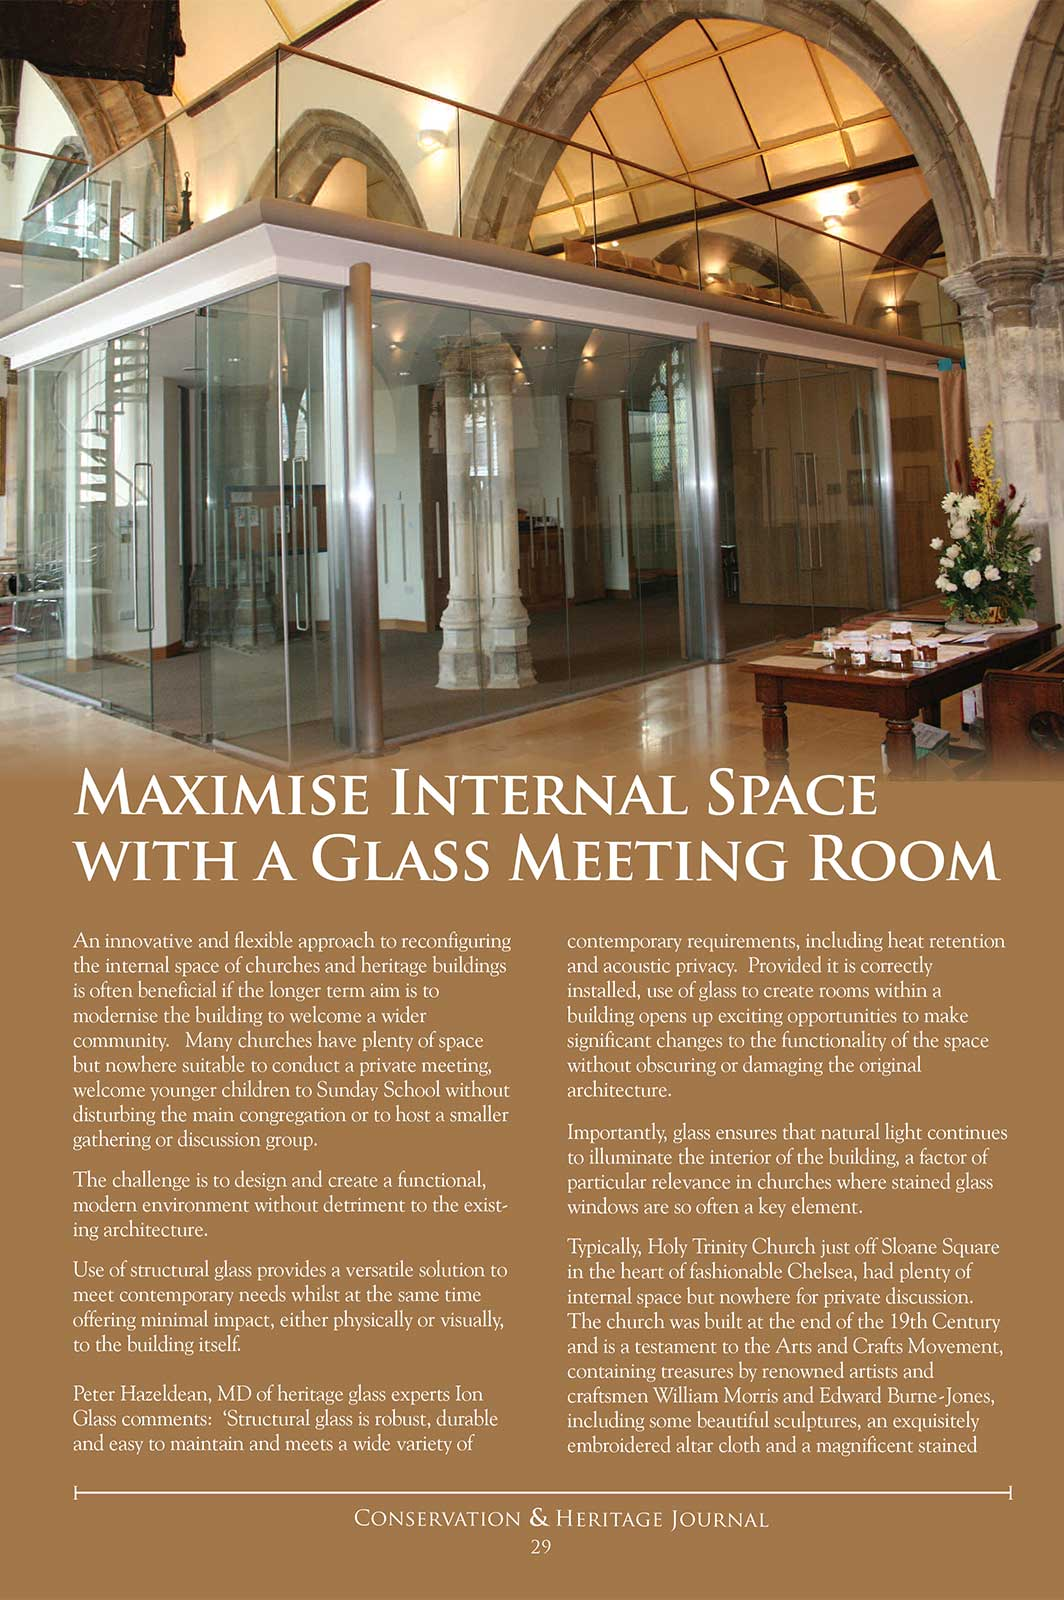 Maximise Internal Space With A Glass Meeting Room - Conservation & Heritage Journal